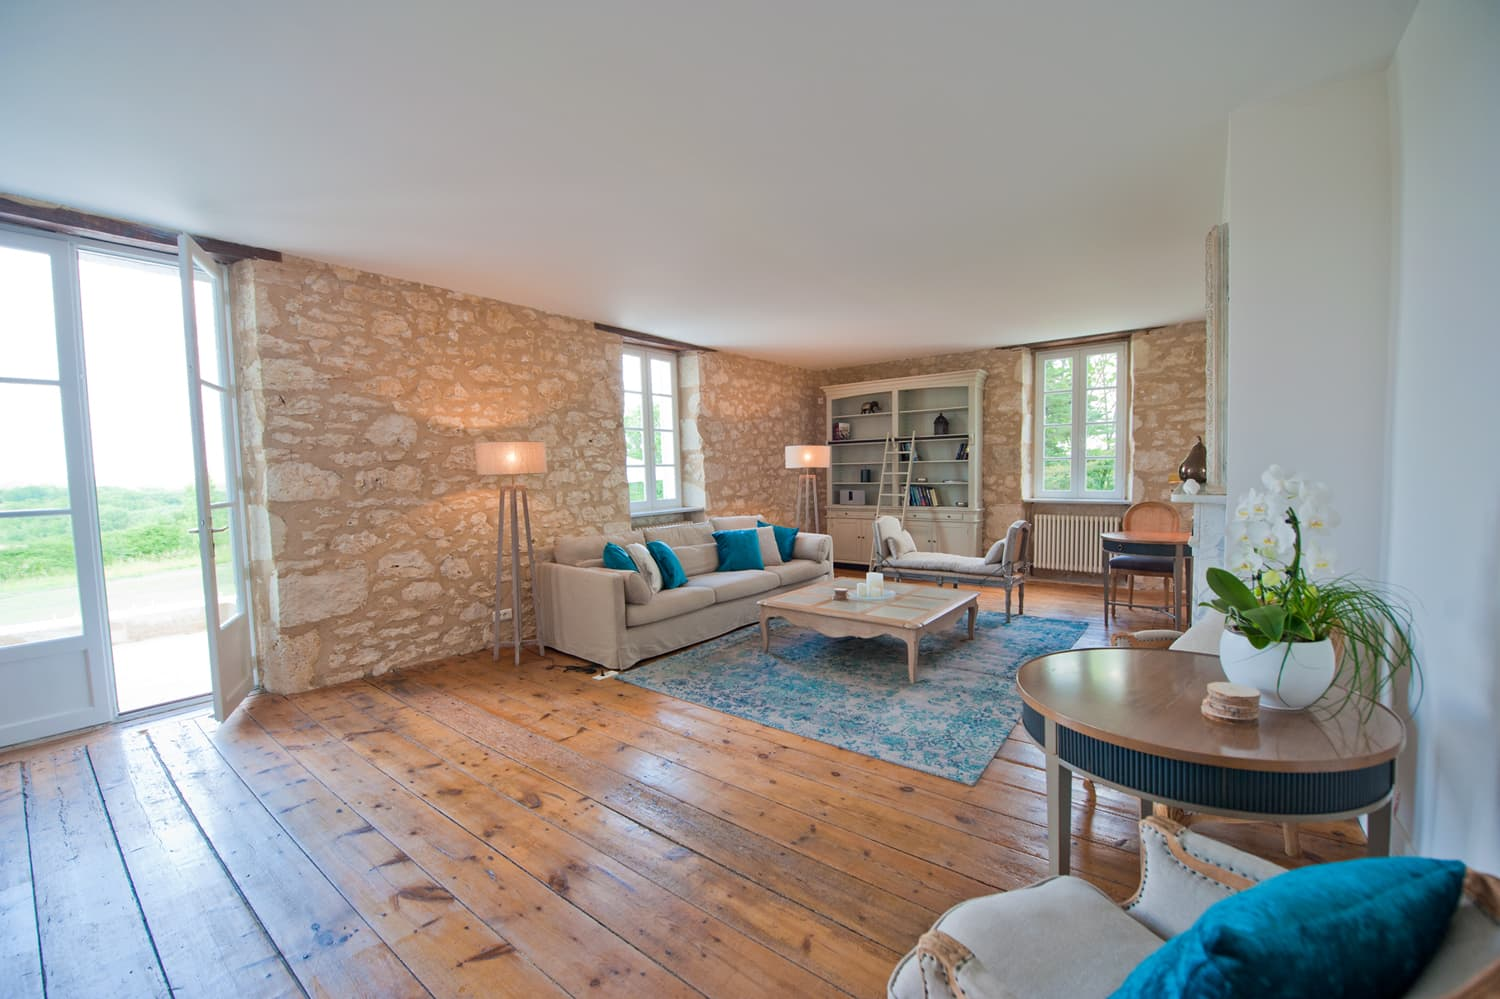 Living room in Dordogne rental home